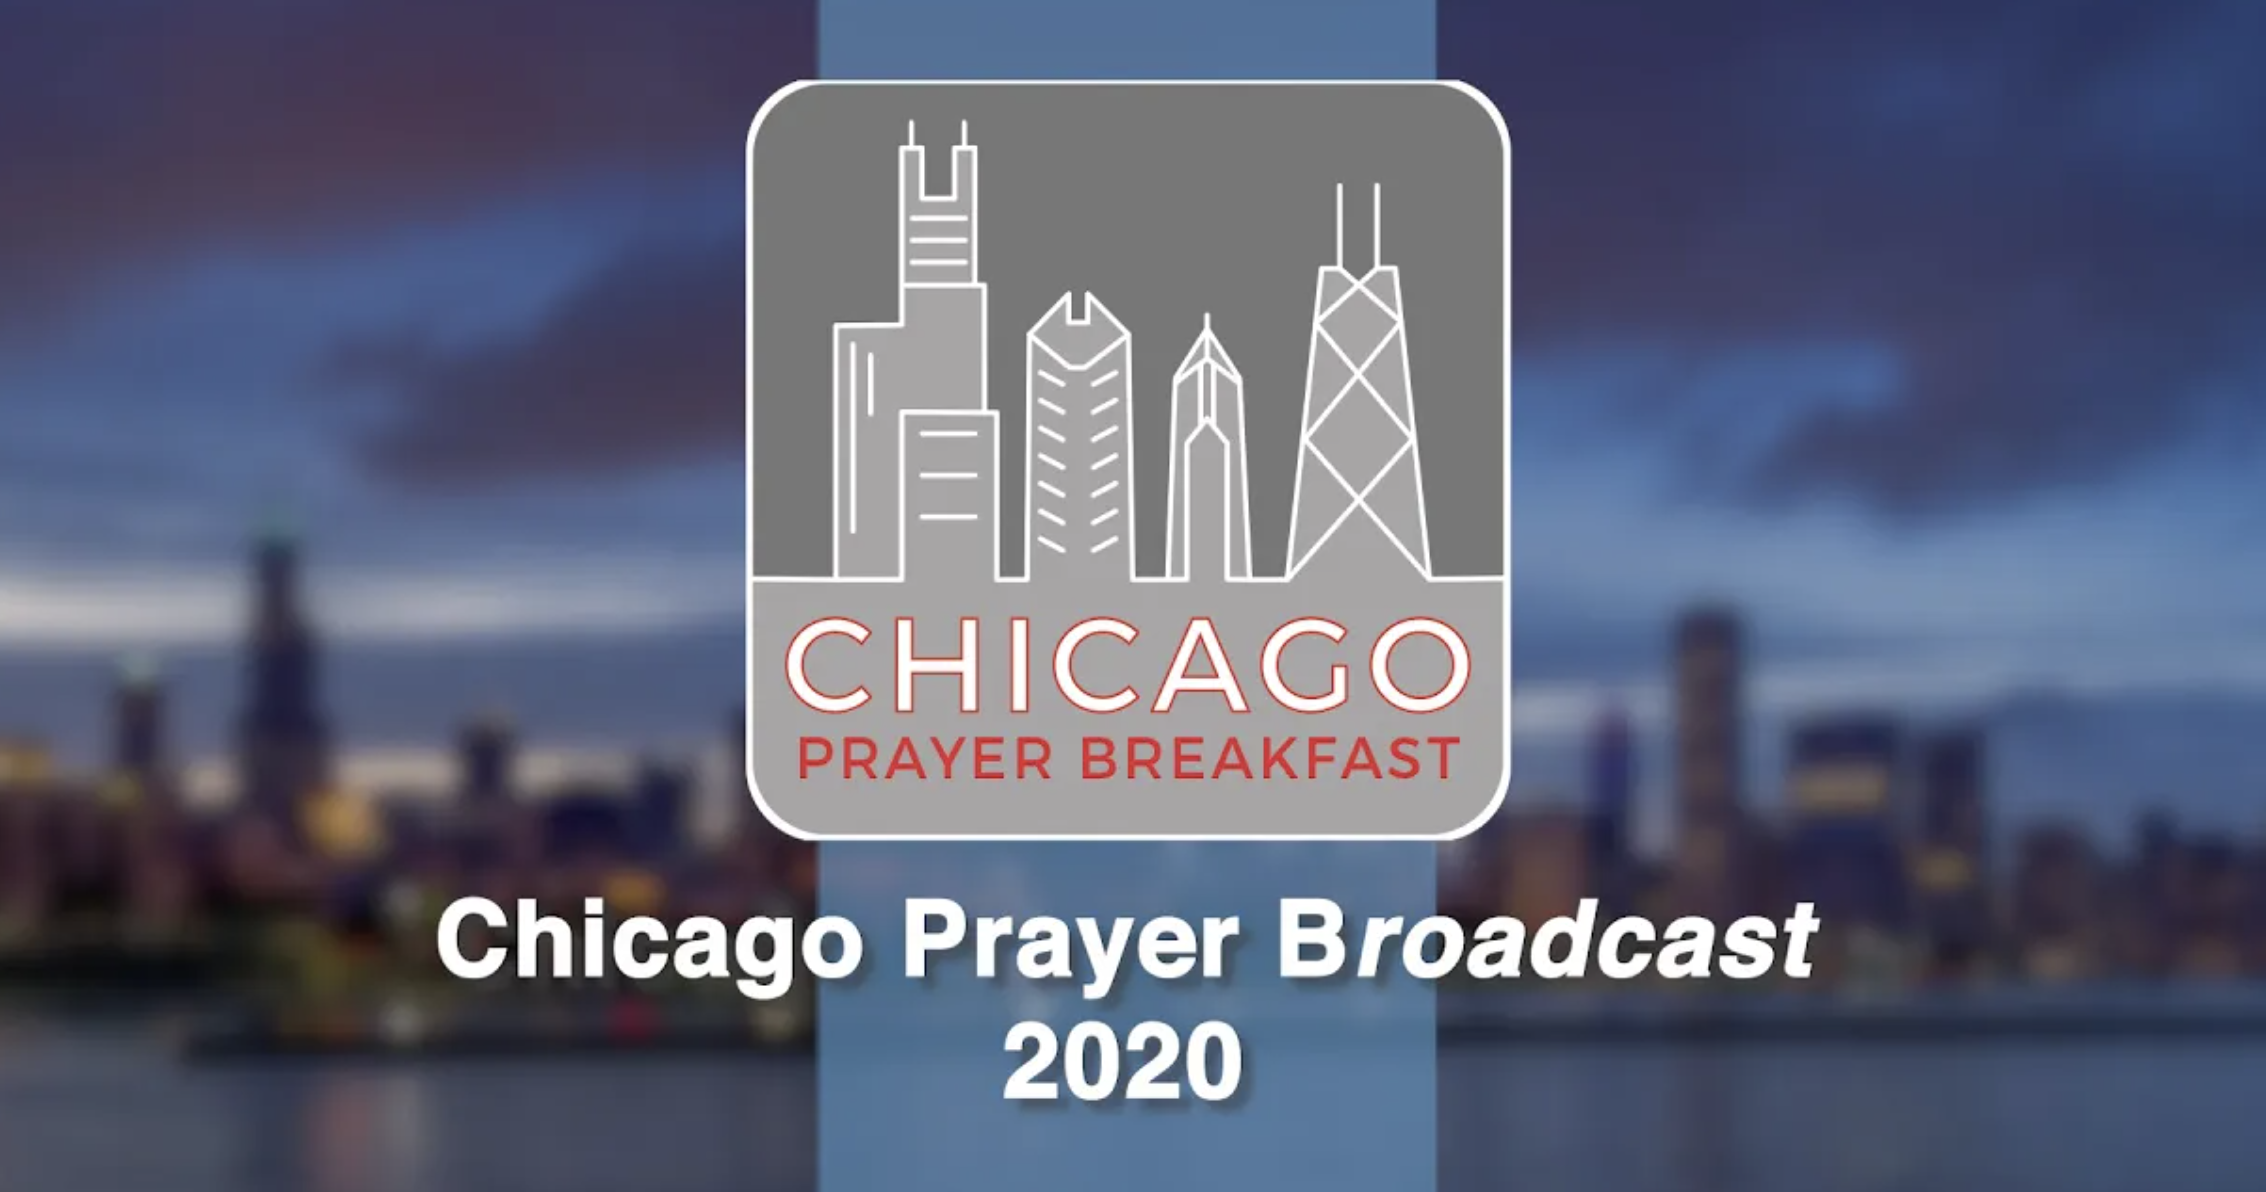 Chicago Prayer Breakfast 2020